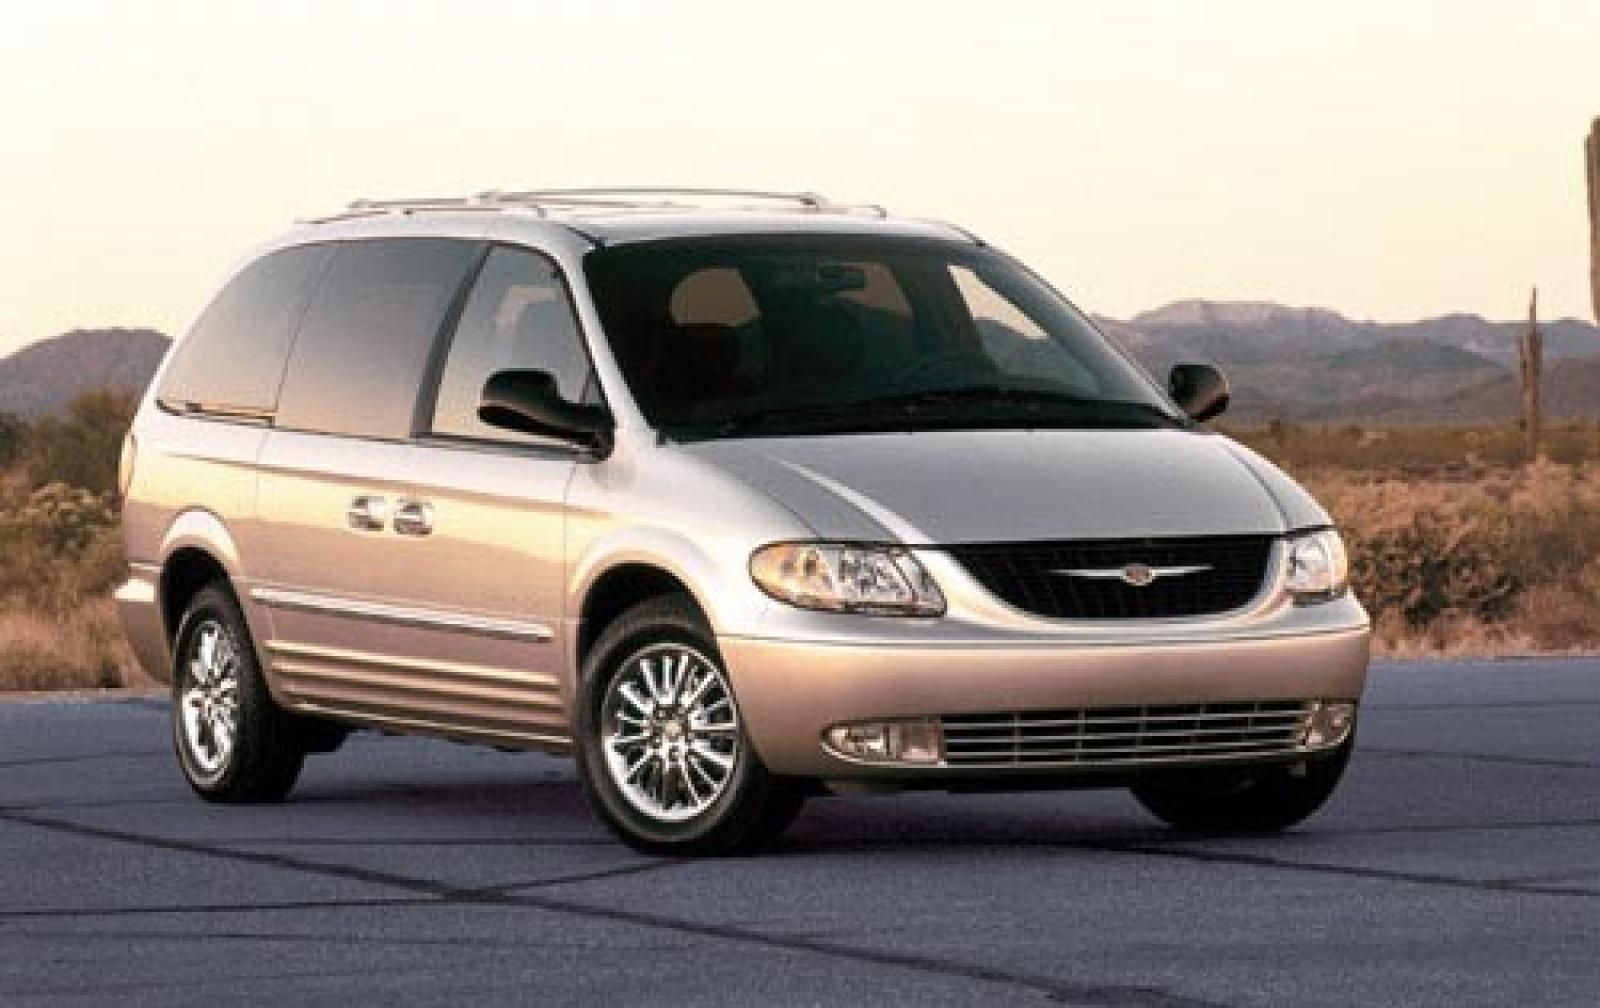 2002 chrysler town and country information and photos zombiedrive. Black Bedroom Furniture Sets. Home Design Ideas